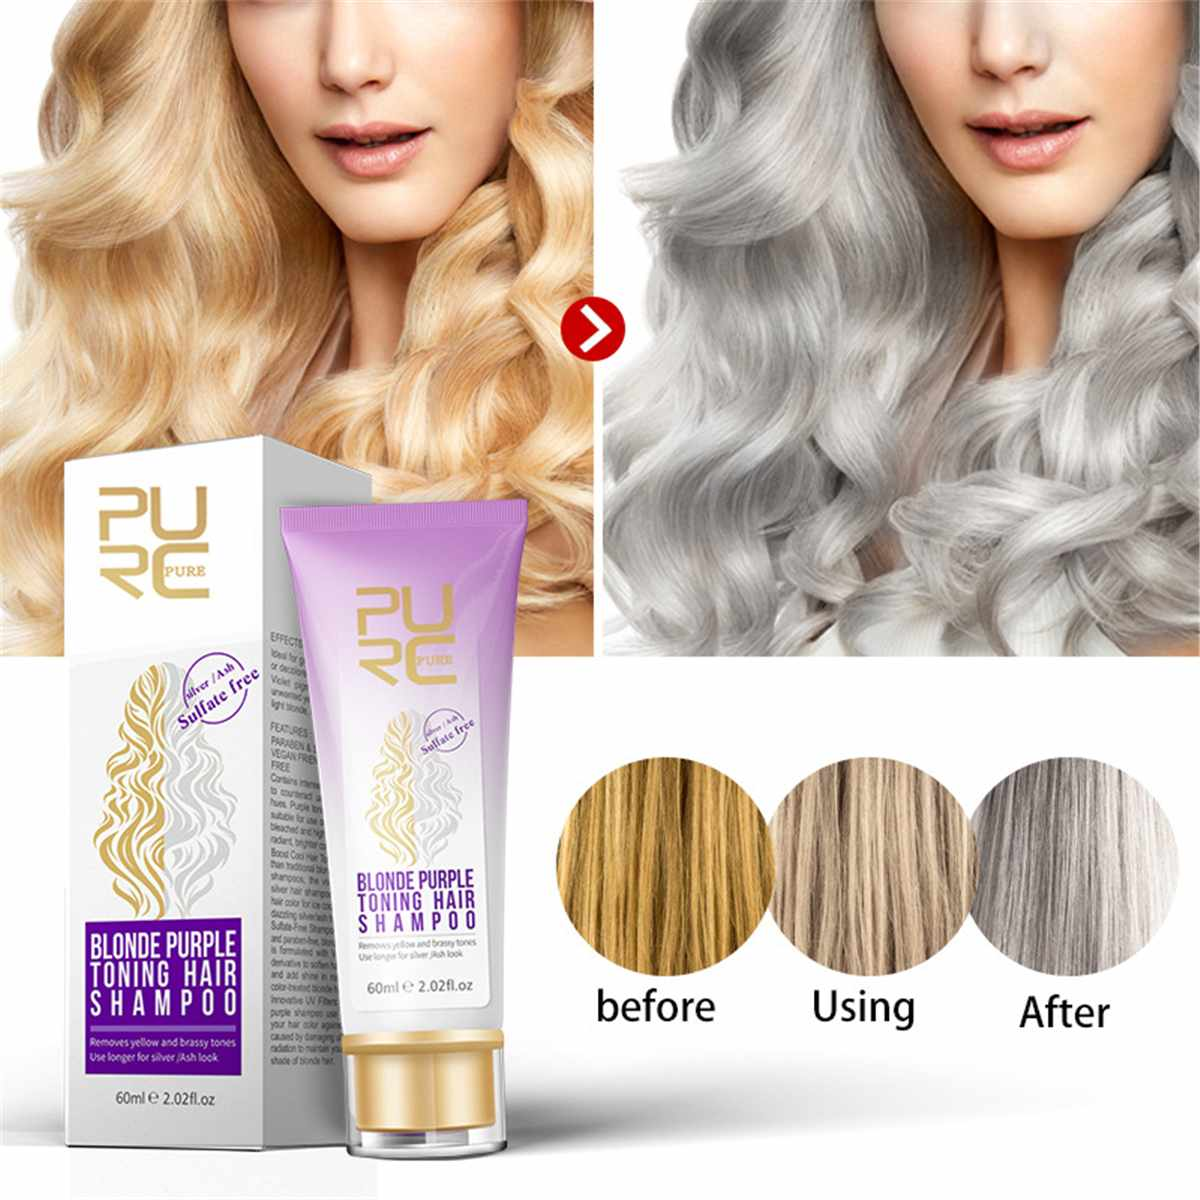 PURC Hair-Shampoo-Removes Blonde Silver Purple Yellow And For Ash-Look Brassy-Tones